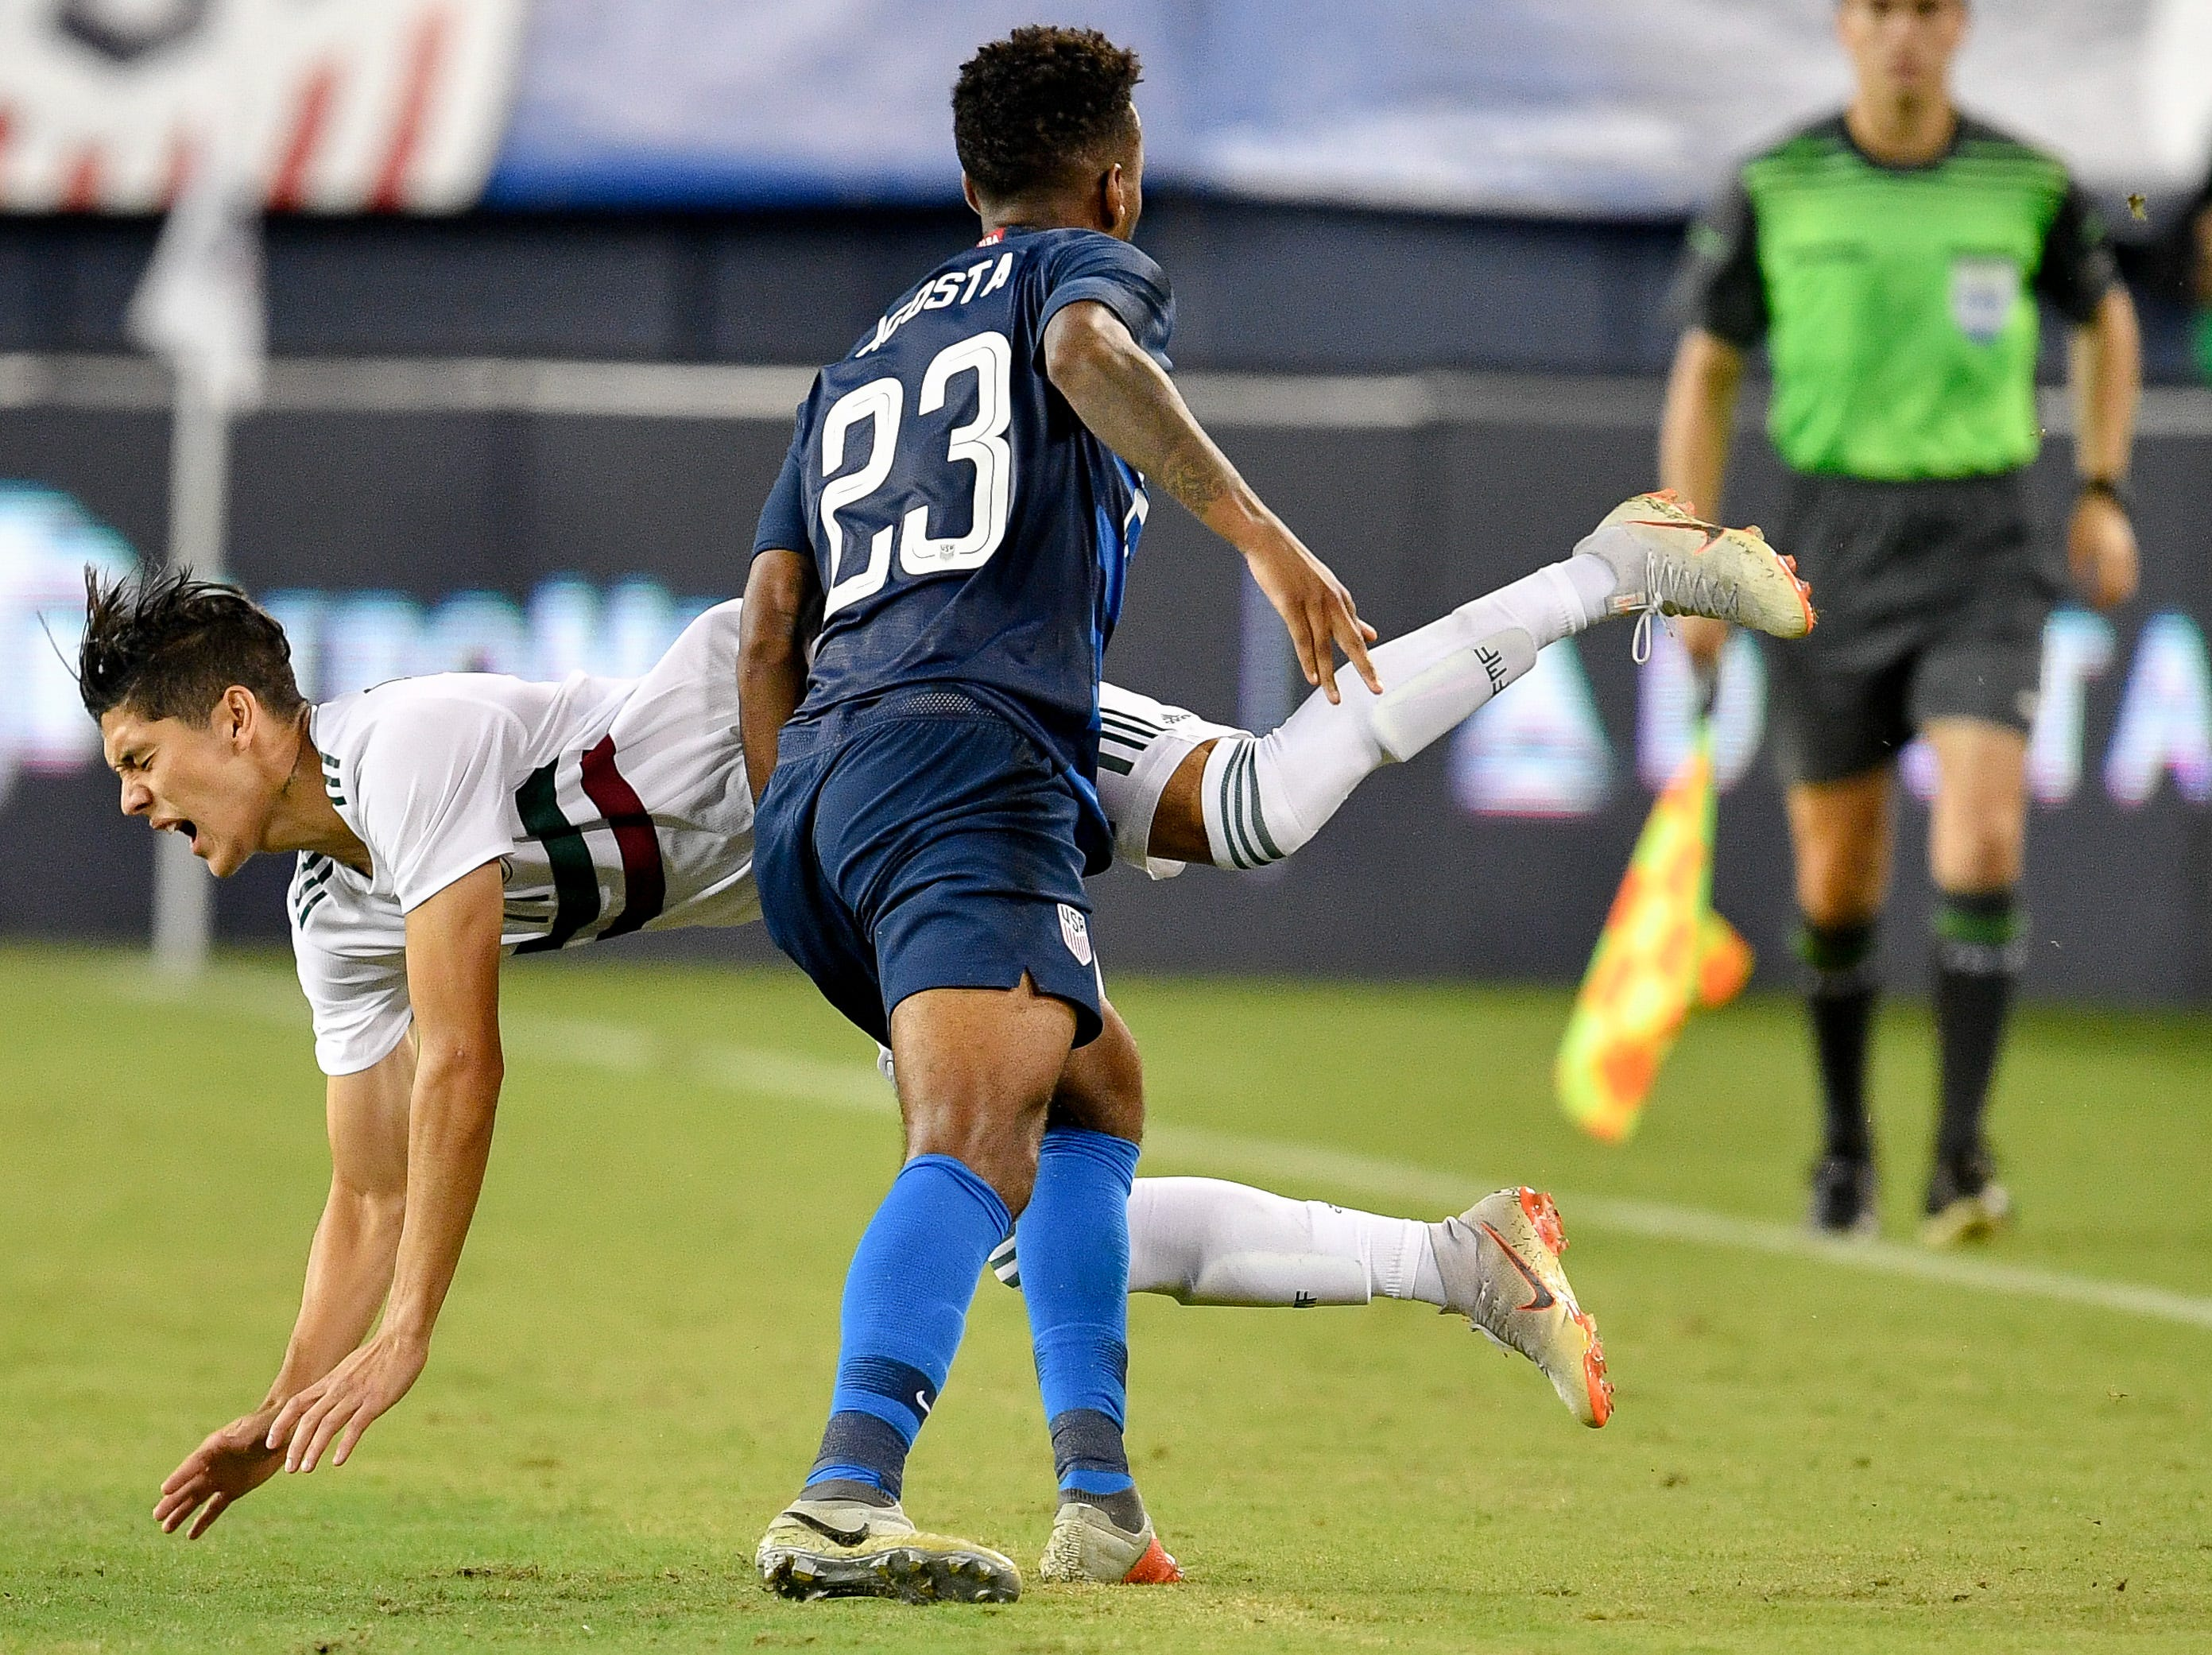 Mexico defender Gerardo Arteaga (17) collides with USA midfielder Kellyn Acosta (23)  during the second half at Nissan Stadium in Nashville, Tenn., Tuesday, Sept. 11, 2018.